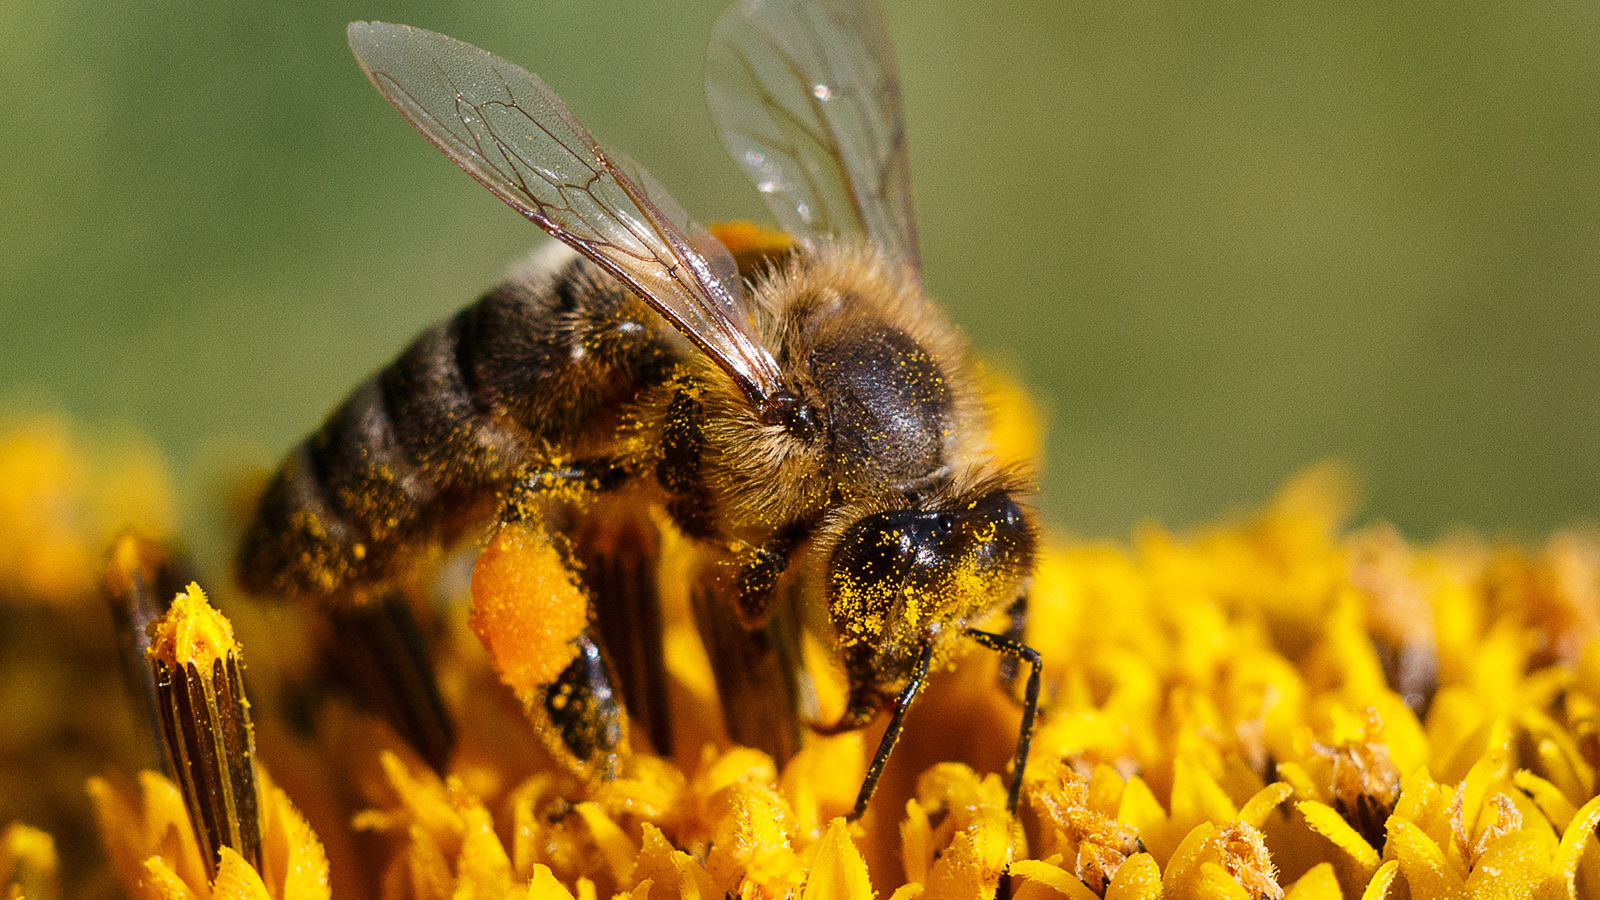 <h4>Neonics Get Into Pollen</h4><p>Neonics are sprayed on seeds. Unlike other pesticides, which remain on the surface of the plant, neonics are transported to all the tissues of the plant, including the pollen and nectar—which, of course, is bad news for bees and other pollinators.</p>